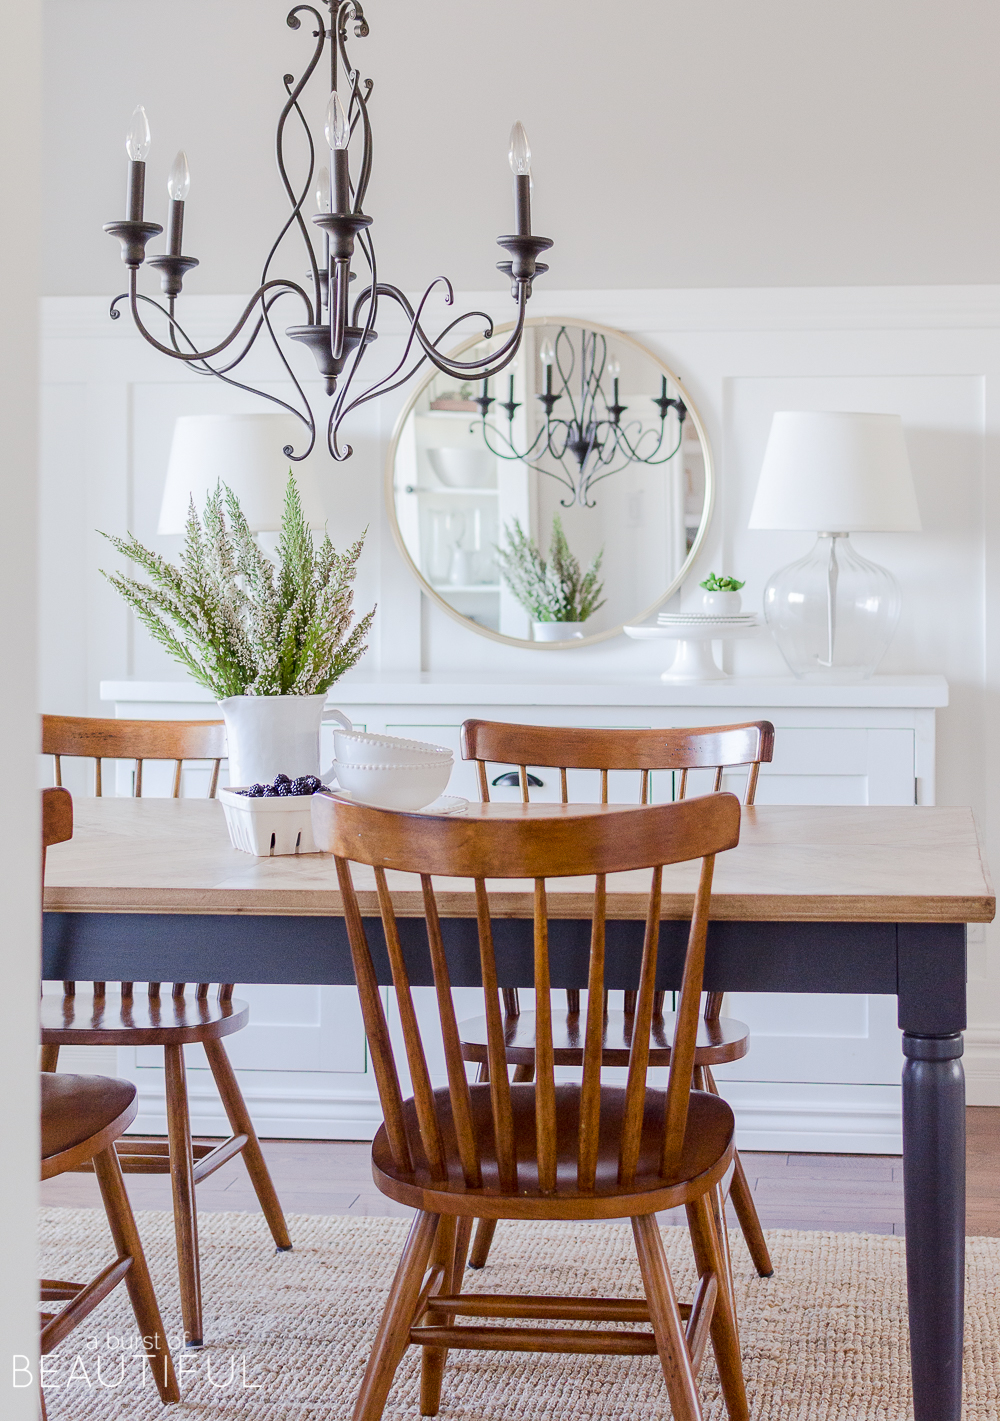 A few subtle changes are all you need to welcome the spring season into your home. Join us on our spring home tour, along with 25 other bloggers to find inspiration and spring decor ideas.